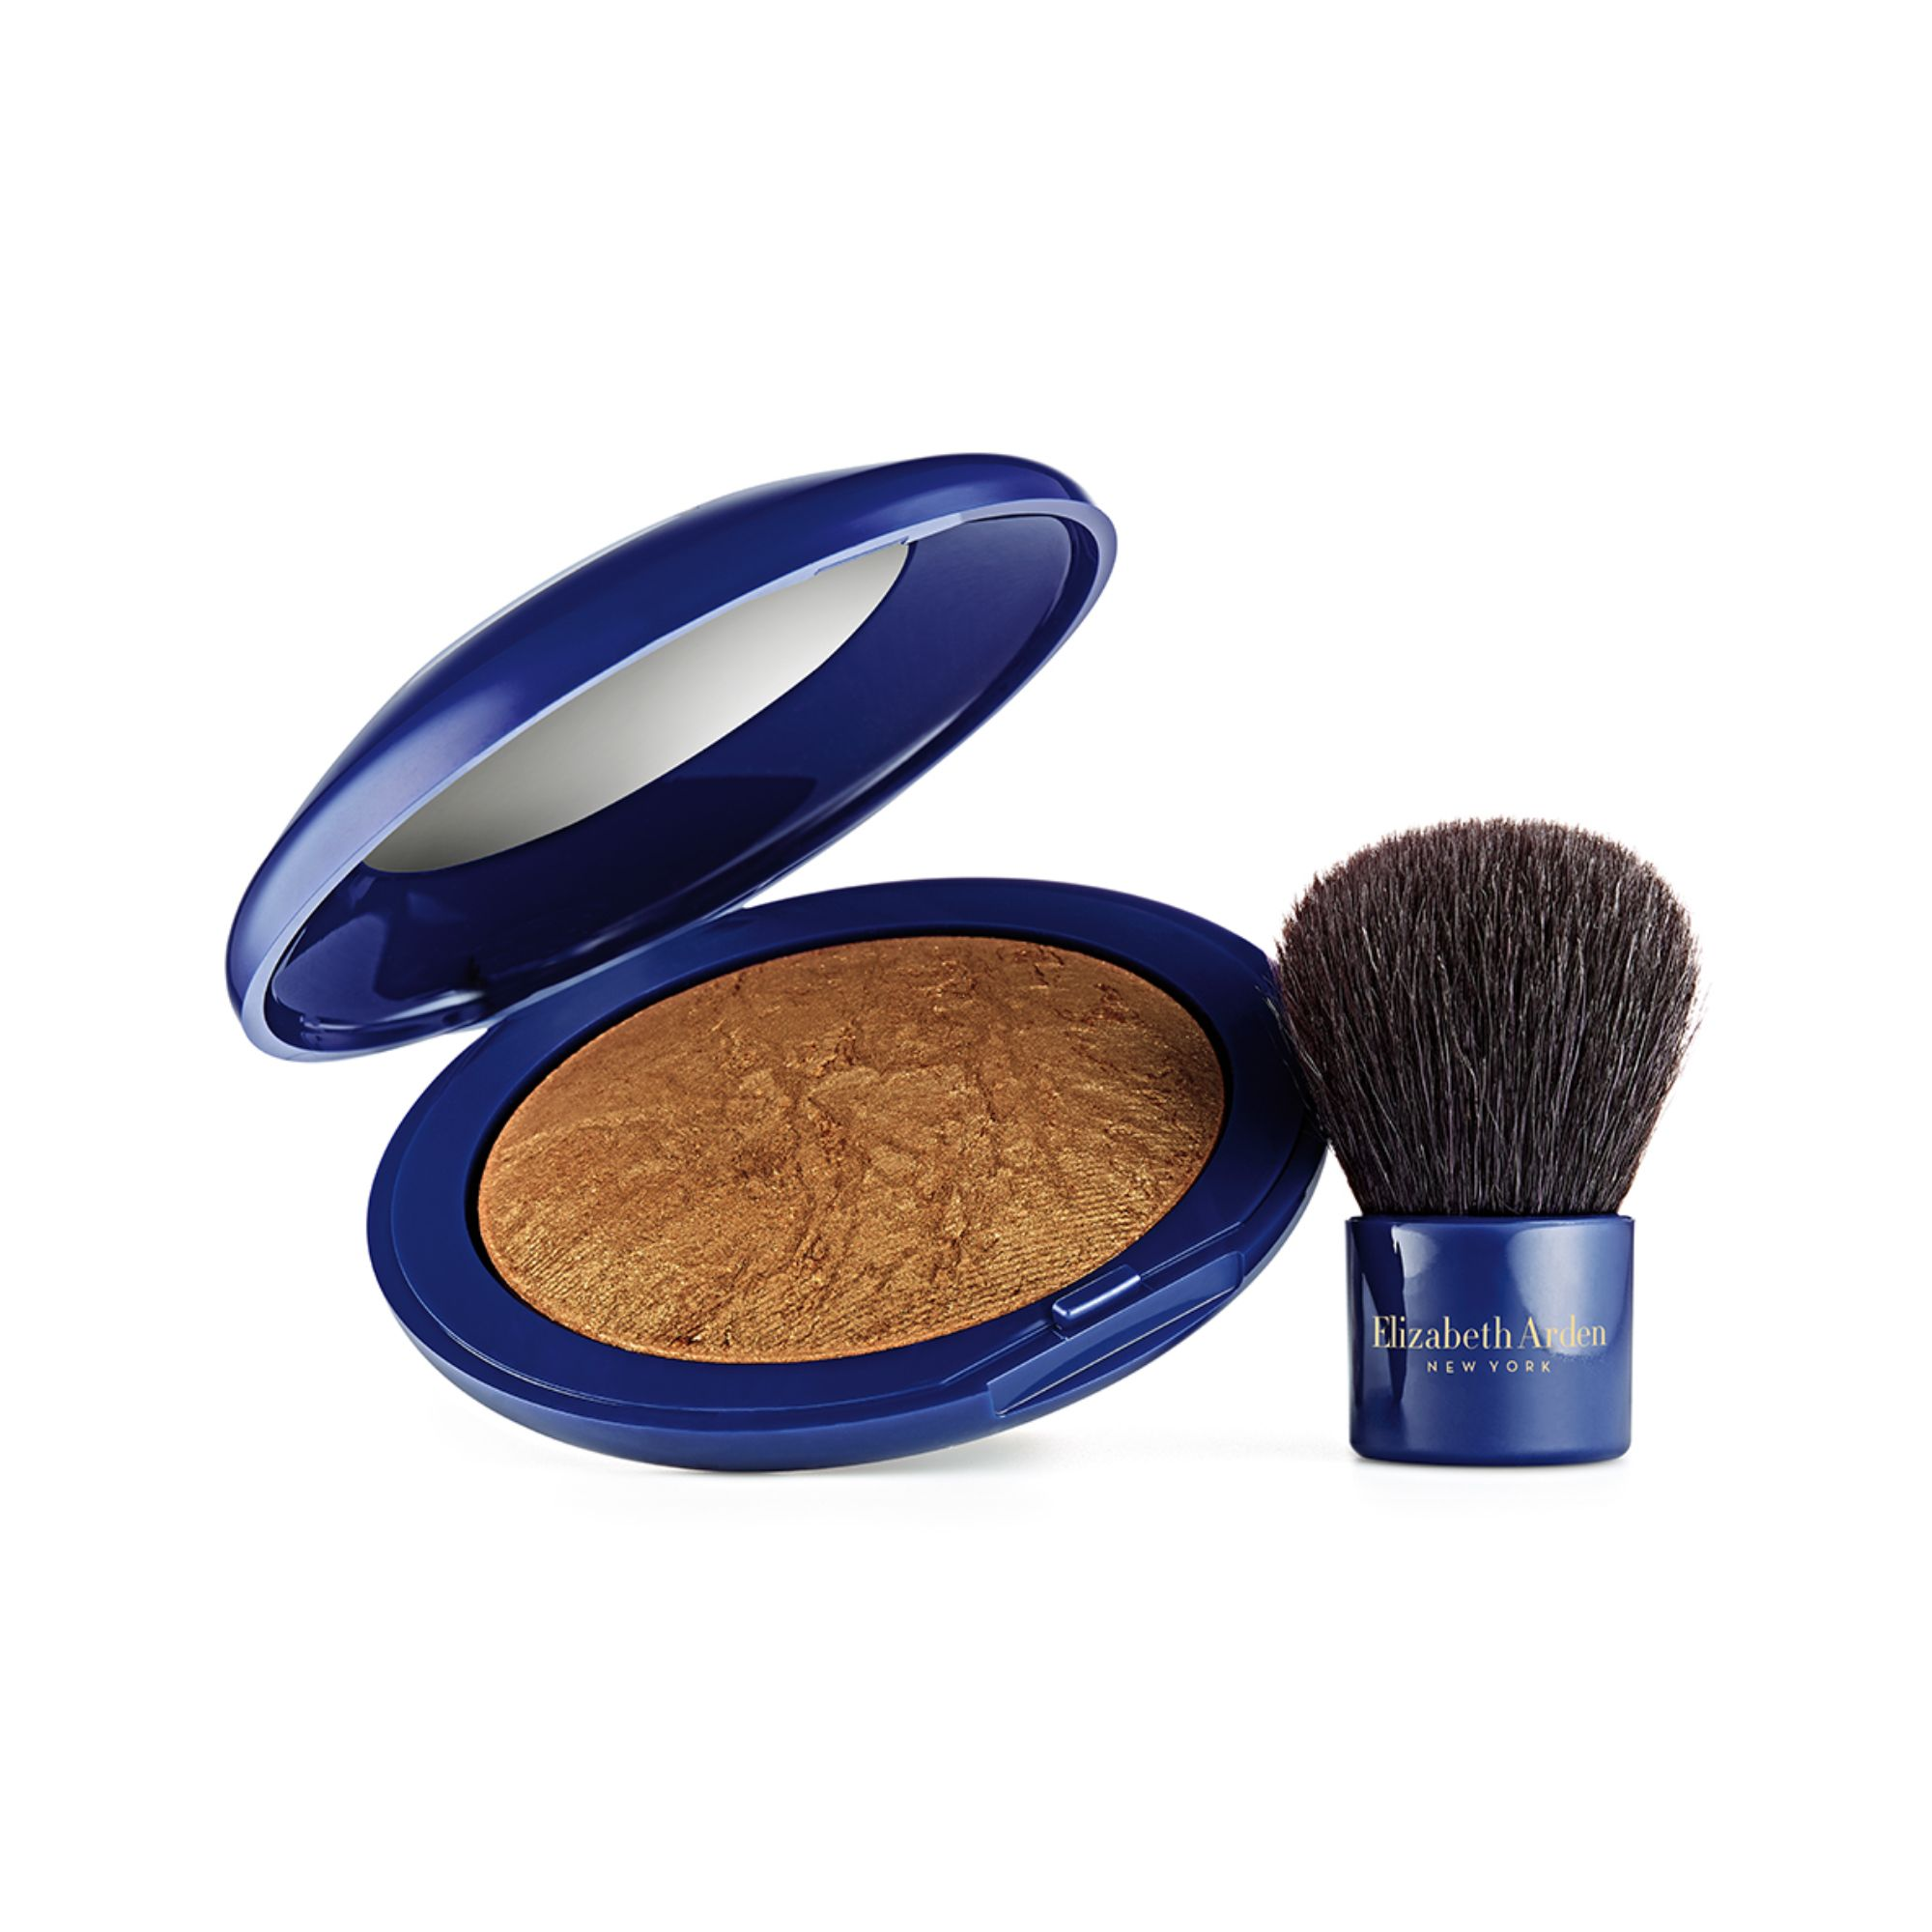 Summer Escape Bronzing Powder